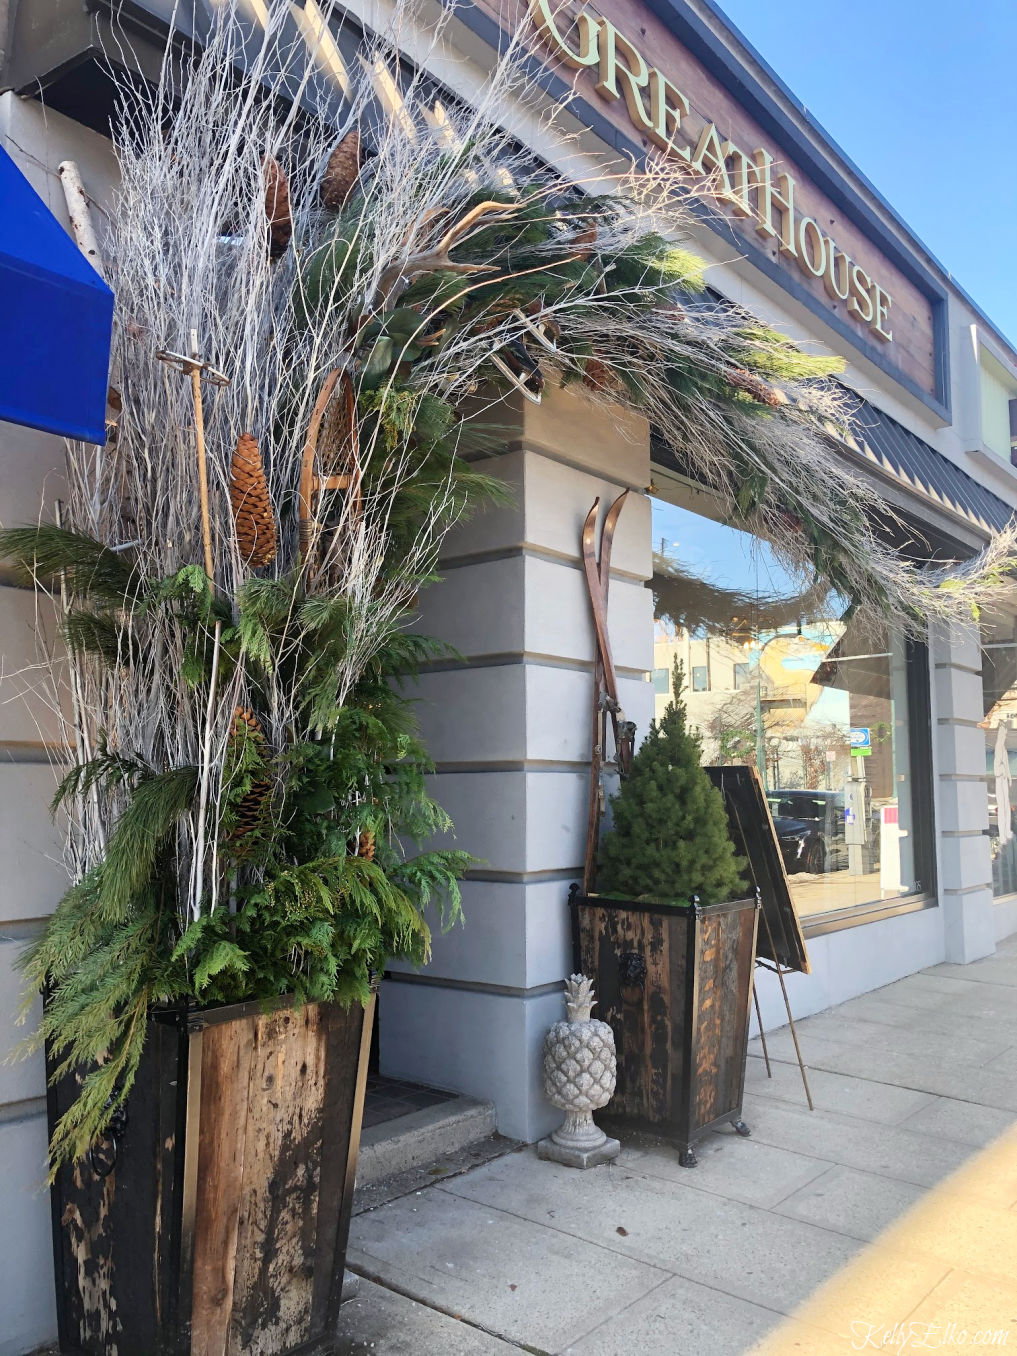 Wow this Christmas planter is incredible with branches stretching all the way across the storefront! kellyelko.com #planters #christmasplanter #christmasdisplays #christmasporch #planterideas #winterplanters #diychristmas #christmasdecor #kellyelko